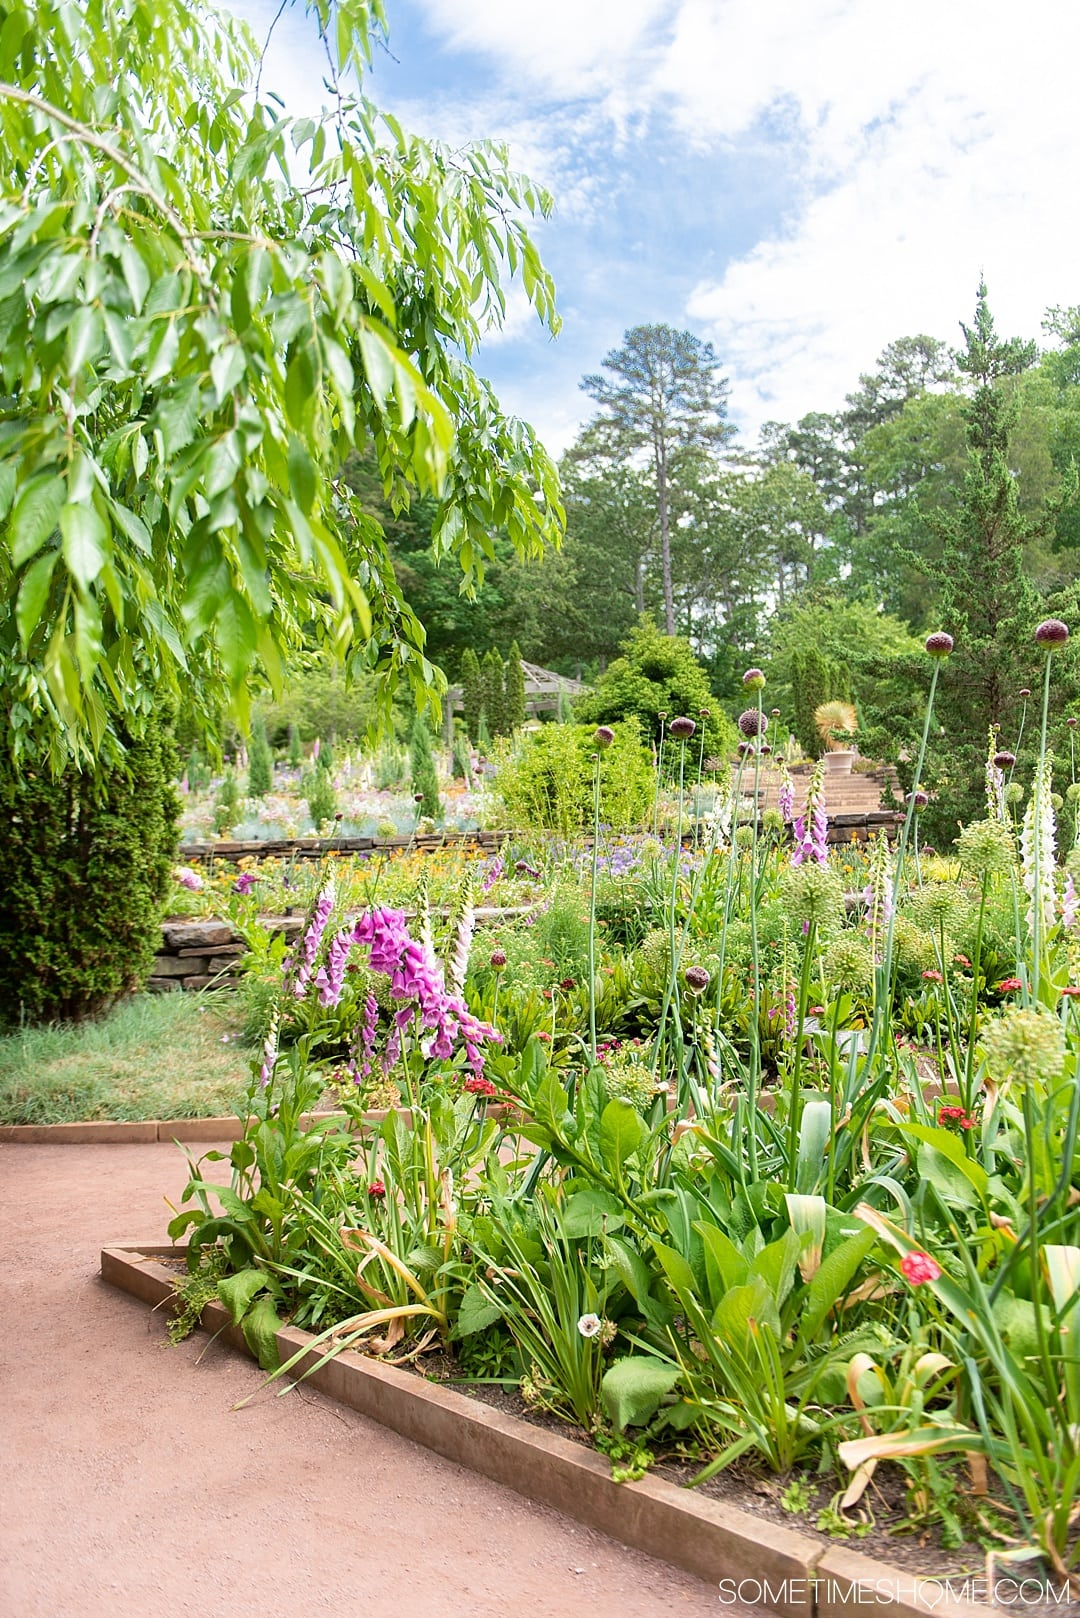 The 12 Best Photography Spots in Durham, North Carolina include art, greenery, a very special part of Duke campus, downtown scenery and more. Click through to read the specifics on this beautiful free entrance garden on Sometimes Home! #DurhamNC #NorthCarolina #DurhamNorthCarolina #Duke #VisitNC #photographyspots #photography